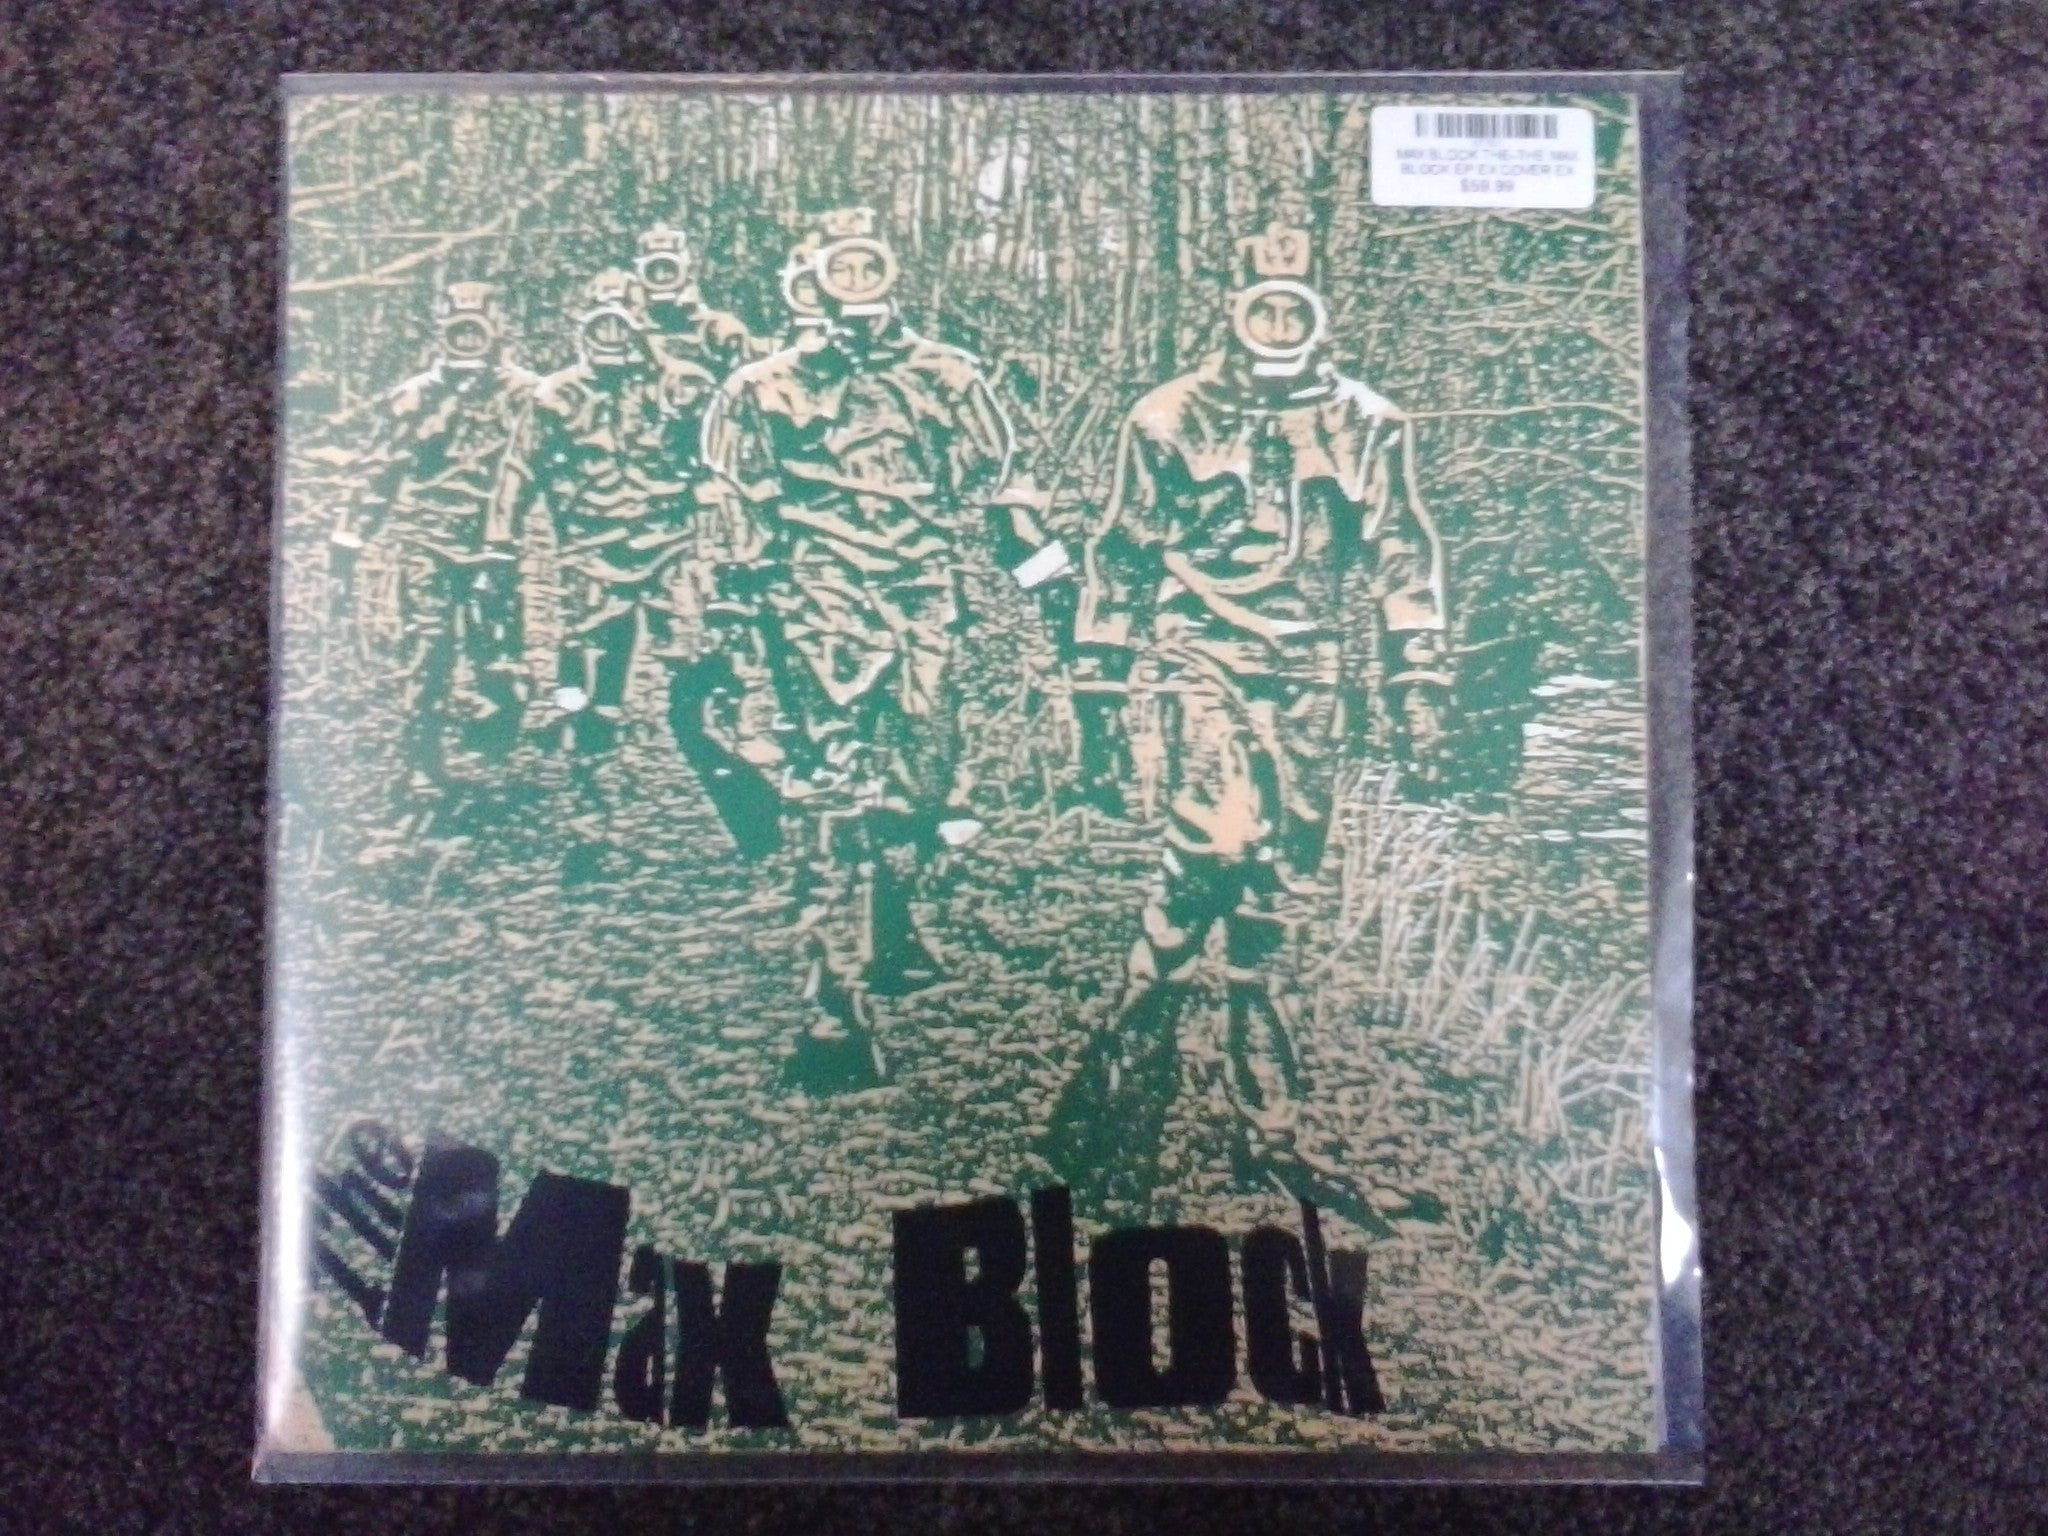 MAX BLOCK THE-THE MAX BLOCK EP EX COVER VG+